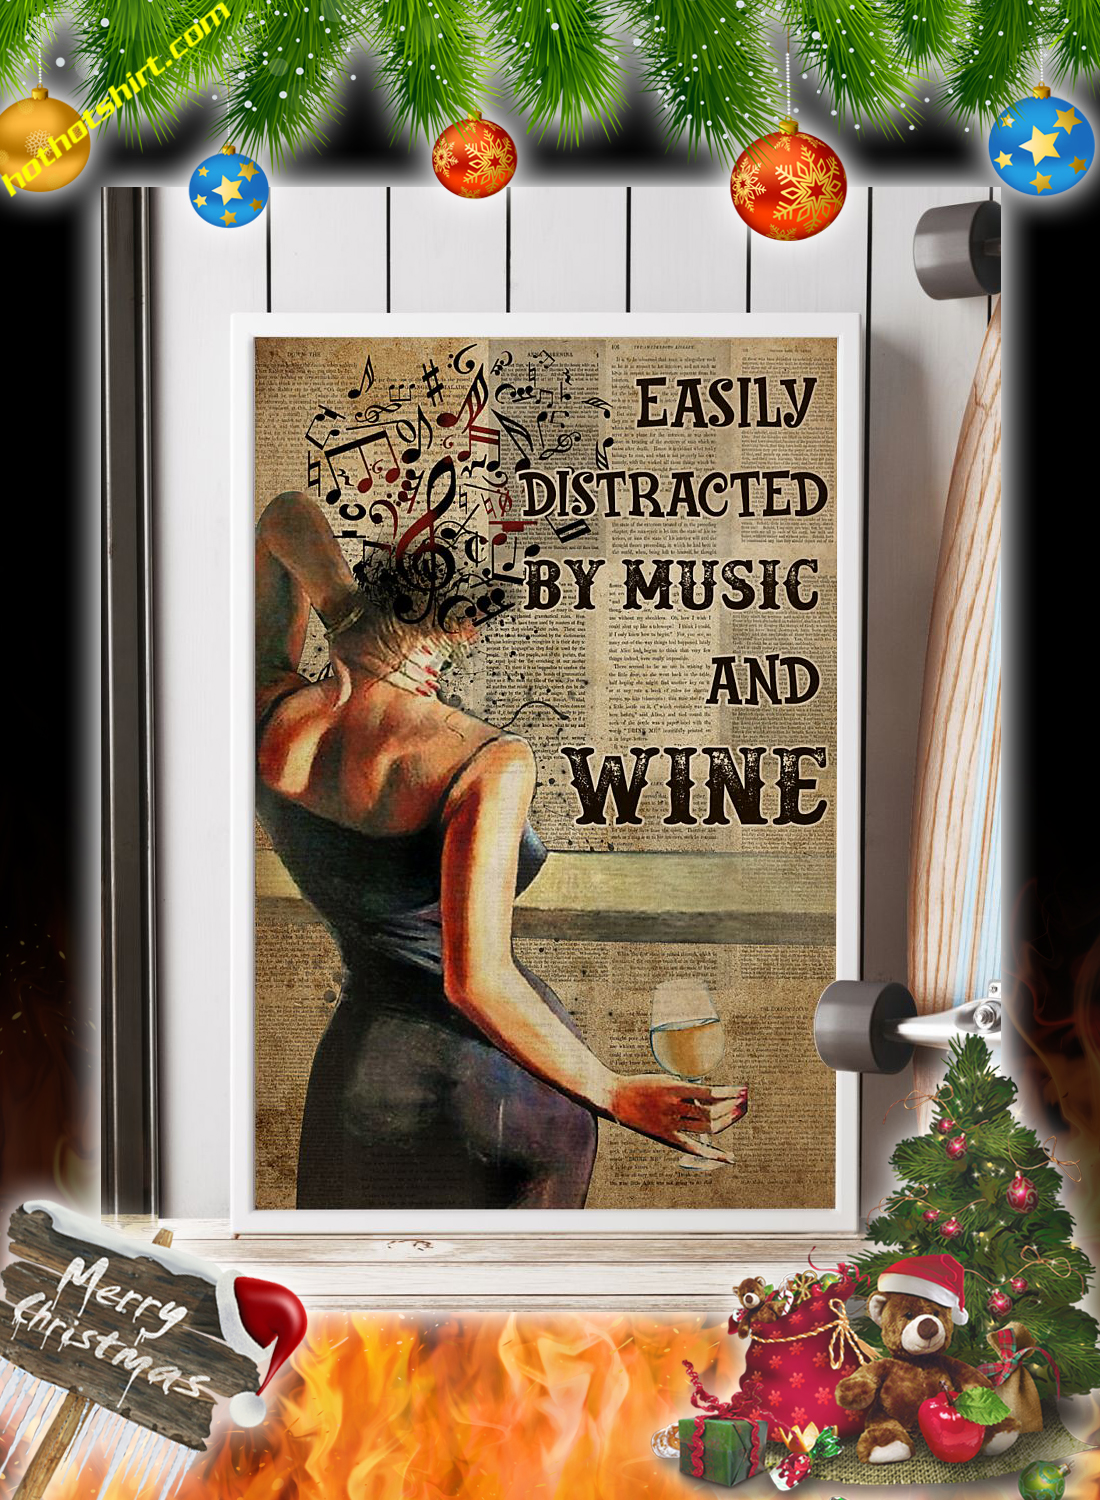 Woman easily distracted by music and wine poster 1